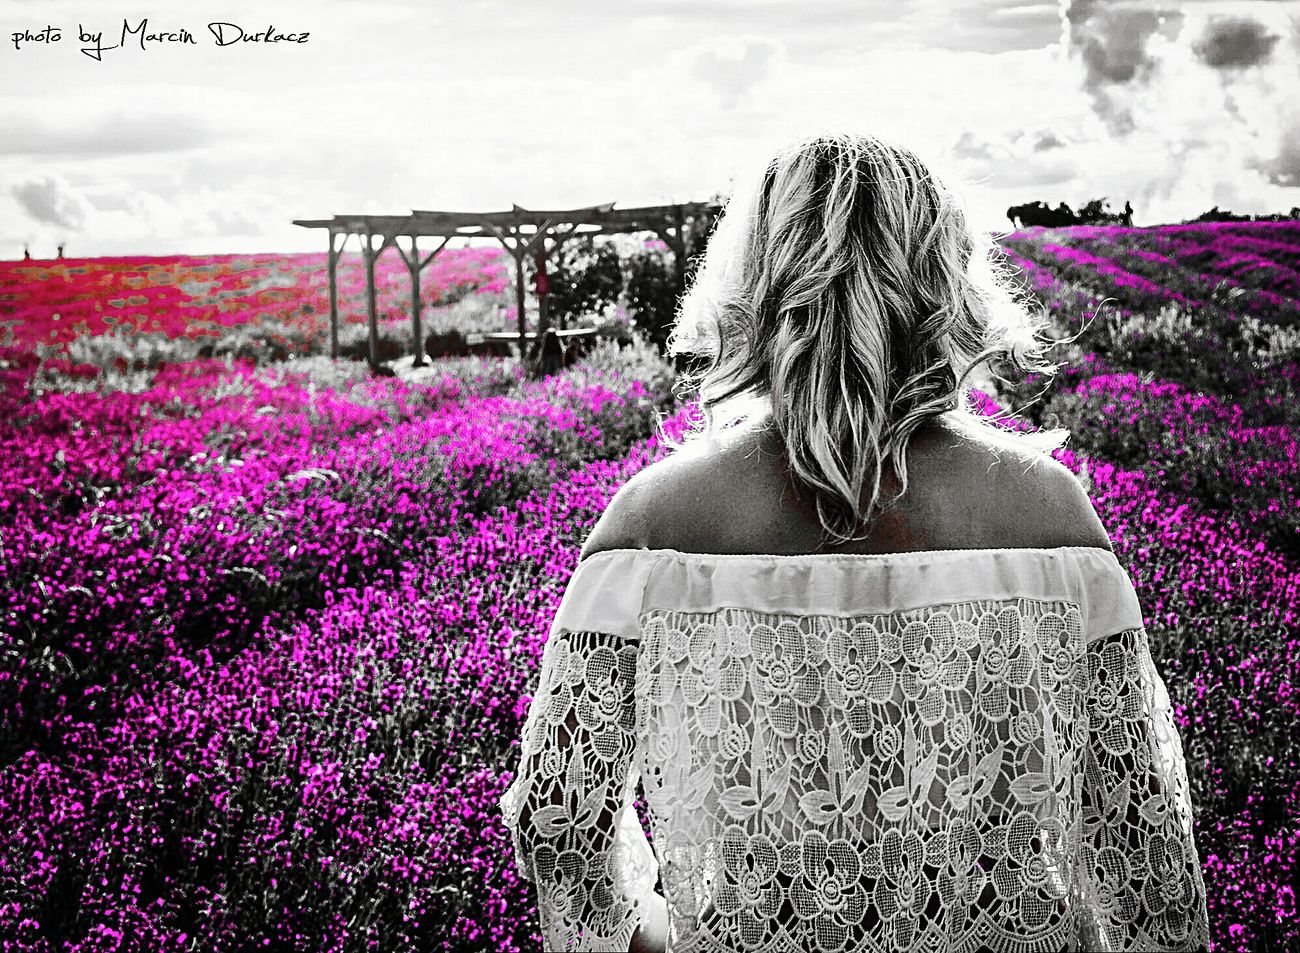 Photography Photooftheday Pic Flower Pink Color Nature Women Adult Beauty In Nature People Day Rear View Casual Clothing MyGIRL MyDarling  Photoshoot Myfiancee Photoshop